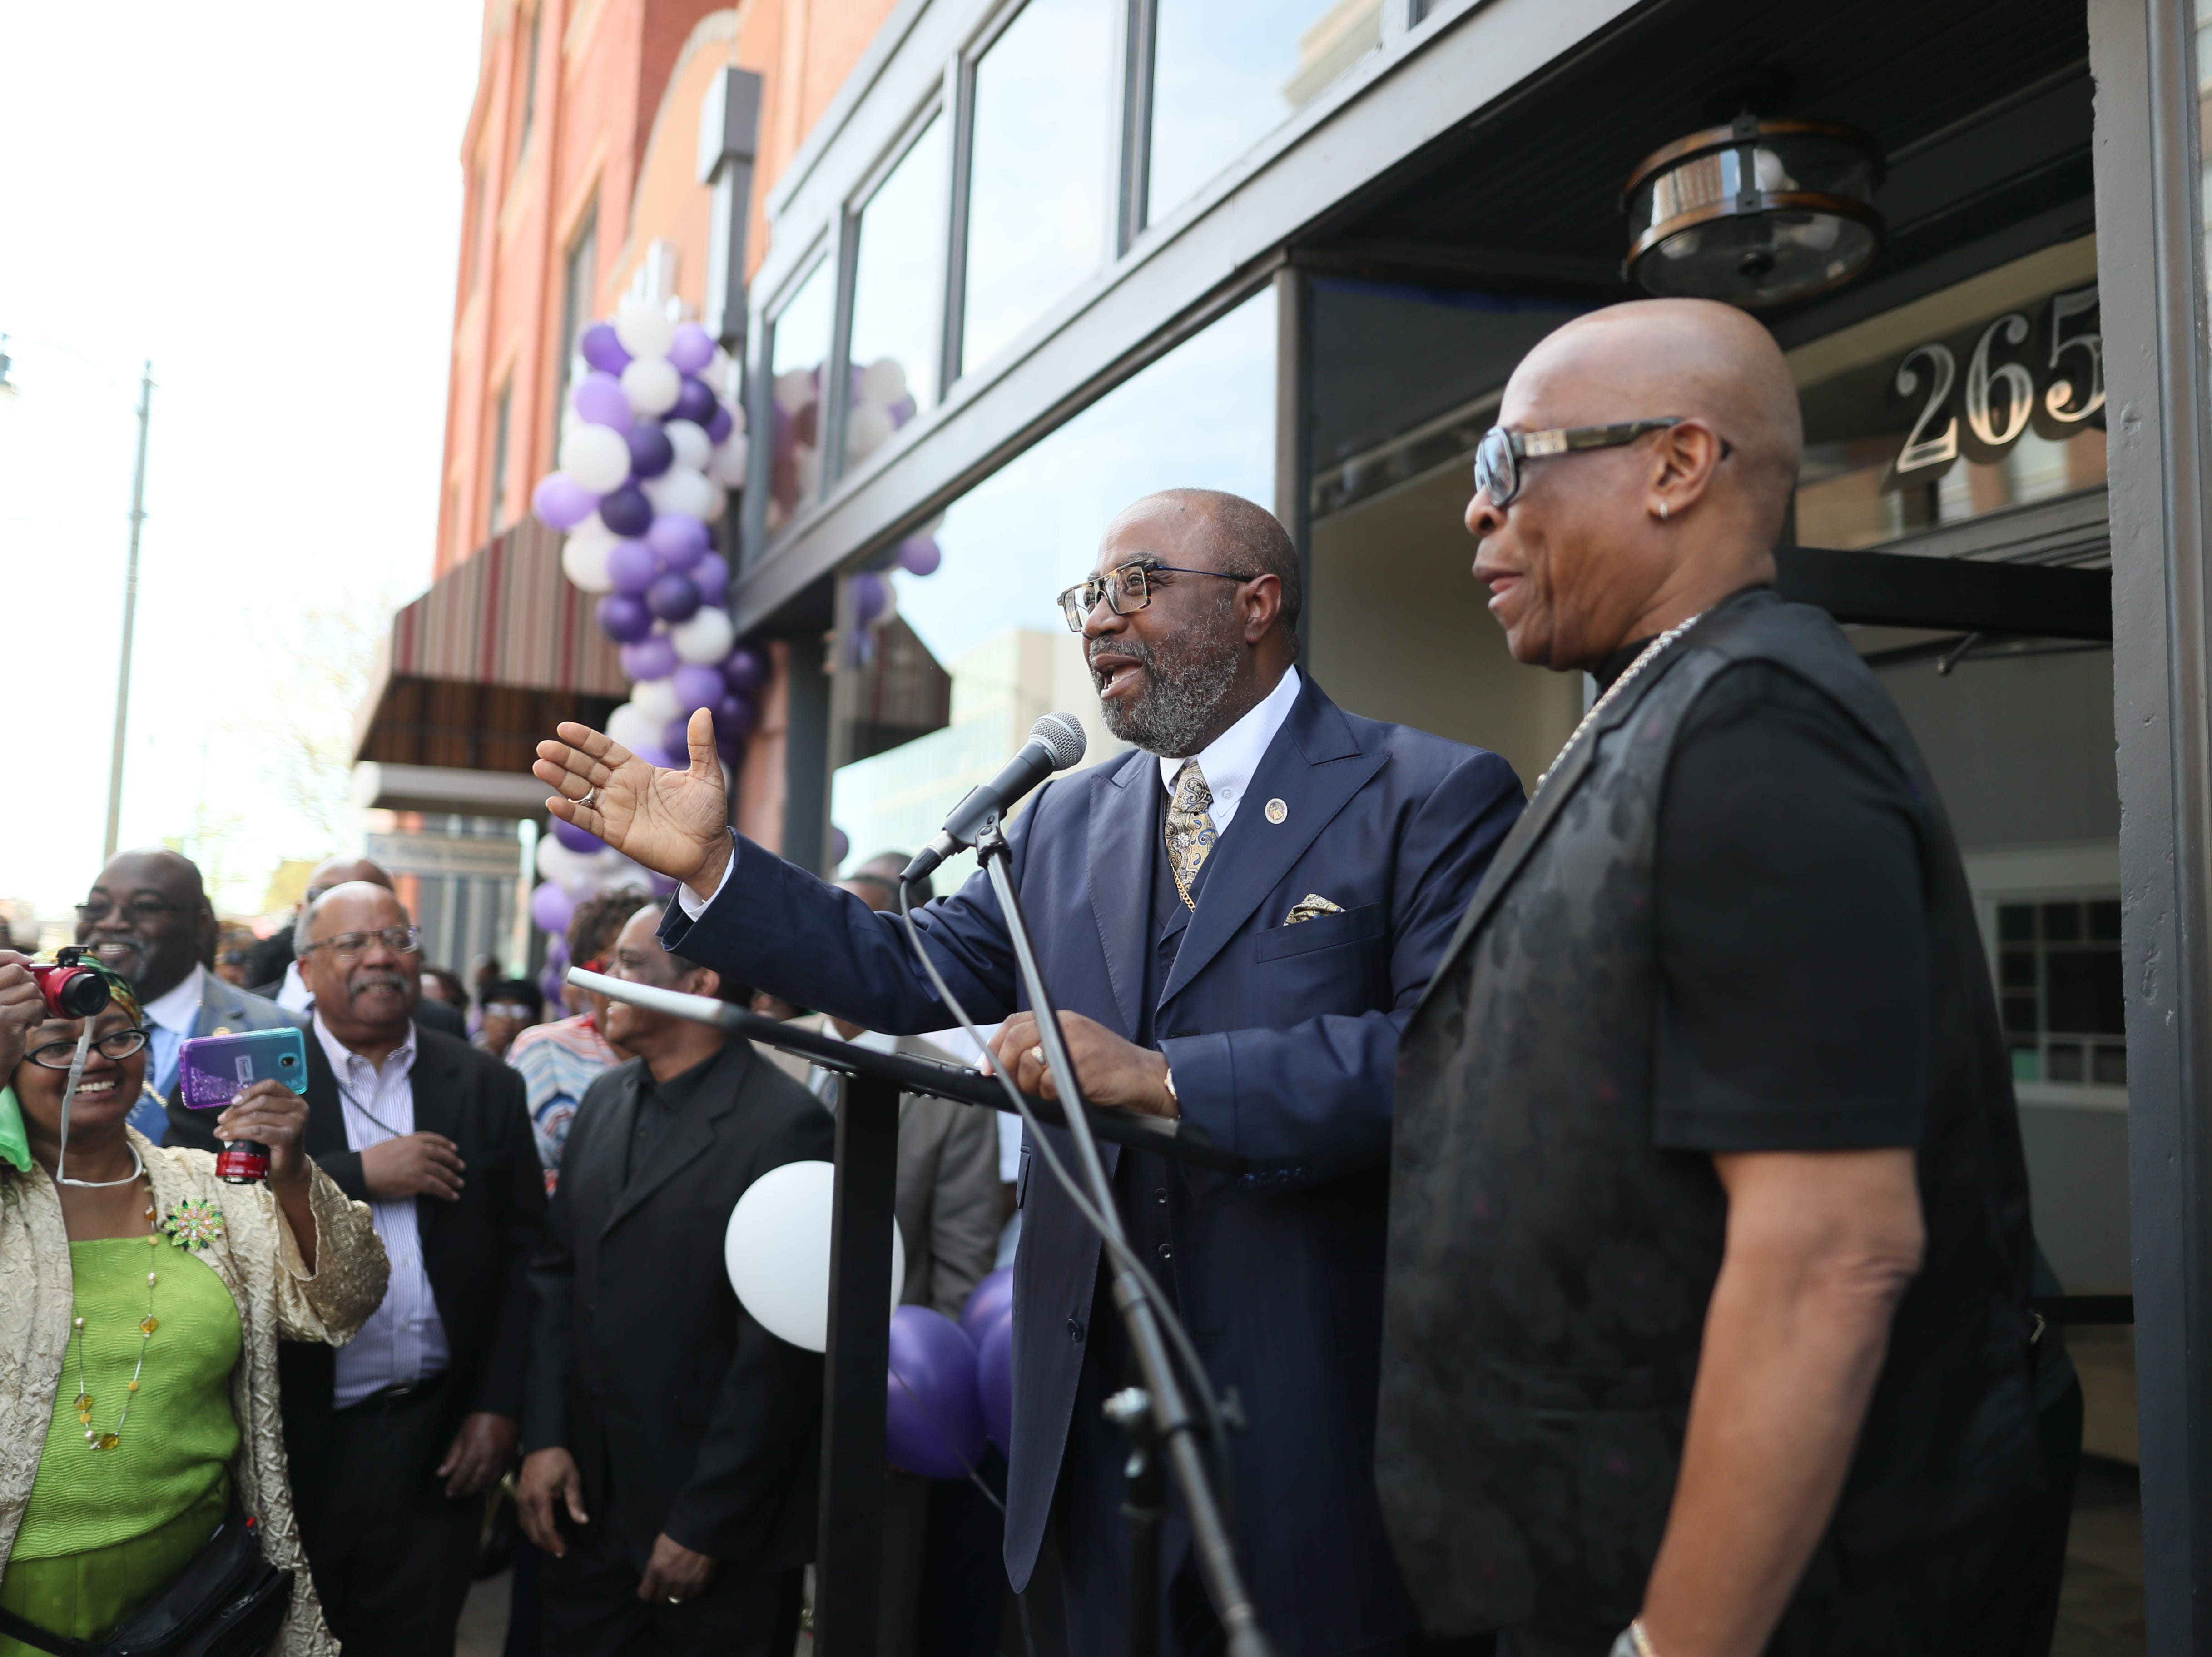 Bishop Brandon Porter and his uncle David Porter speak to people gathered on South Main Street downtown as the the Adler Building is renamed 'The W.L.' in honor of Bishop W.L. Porter on Wednesday, April 10, 2019.